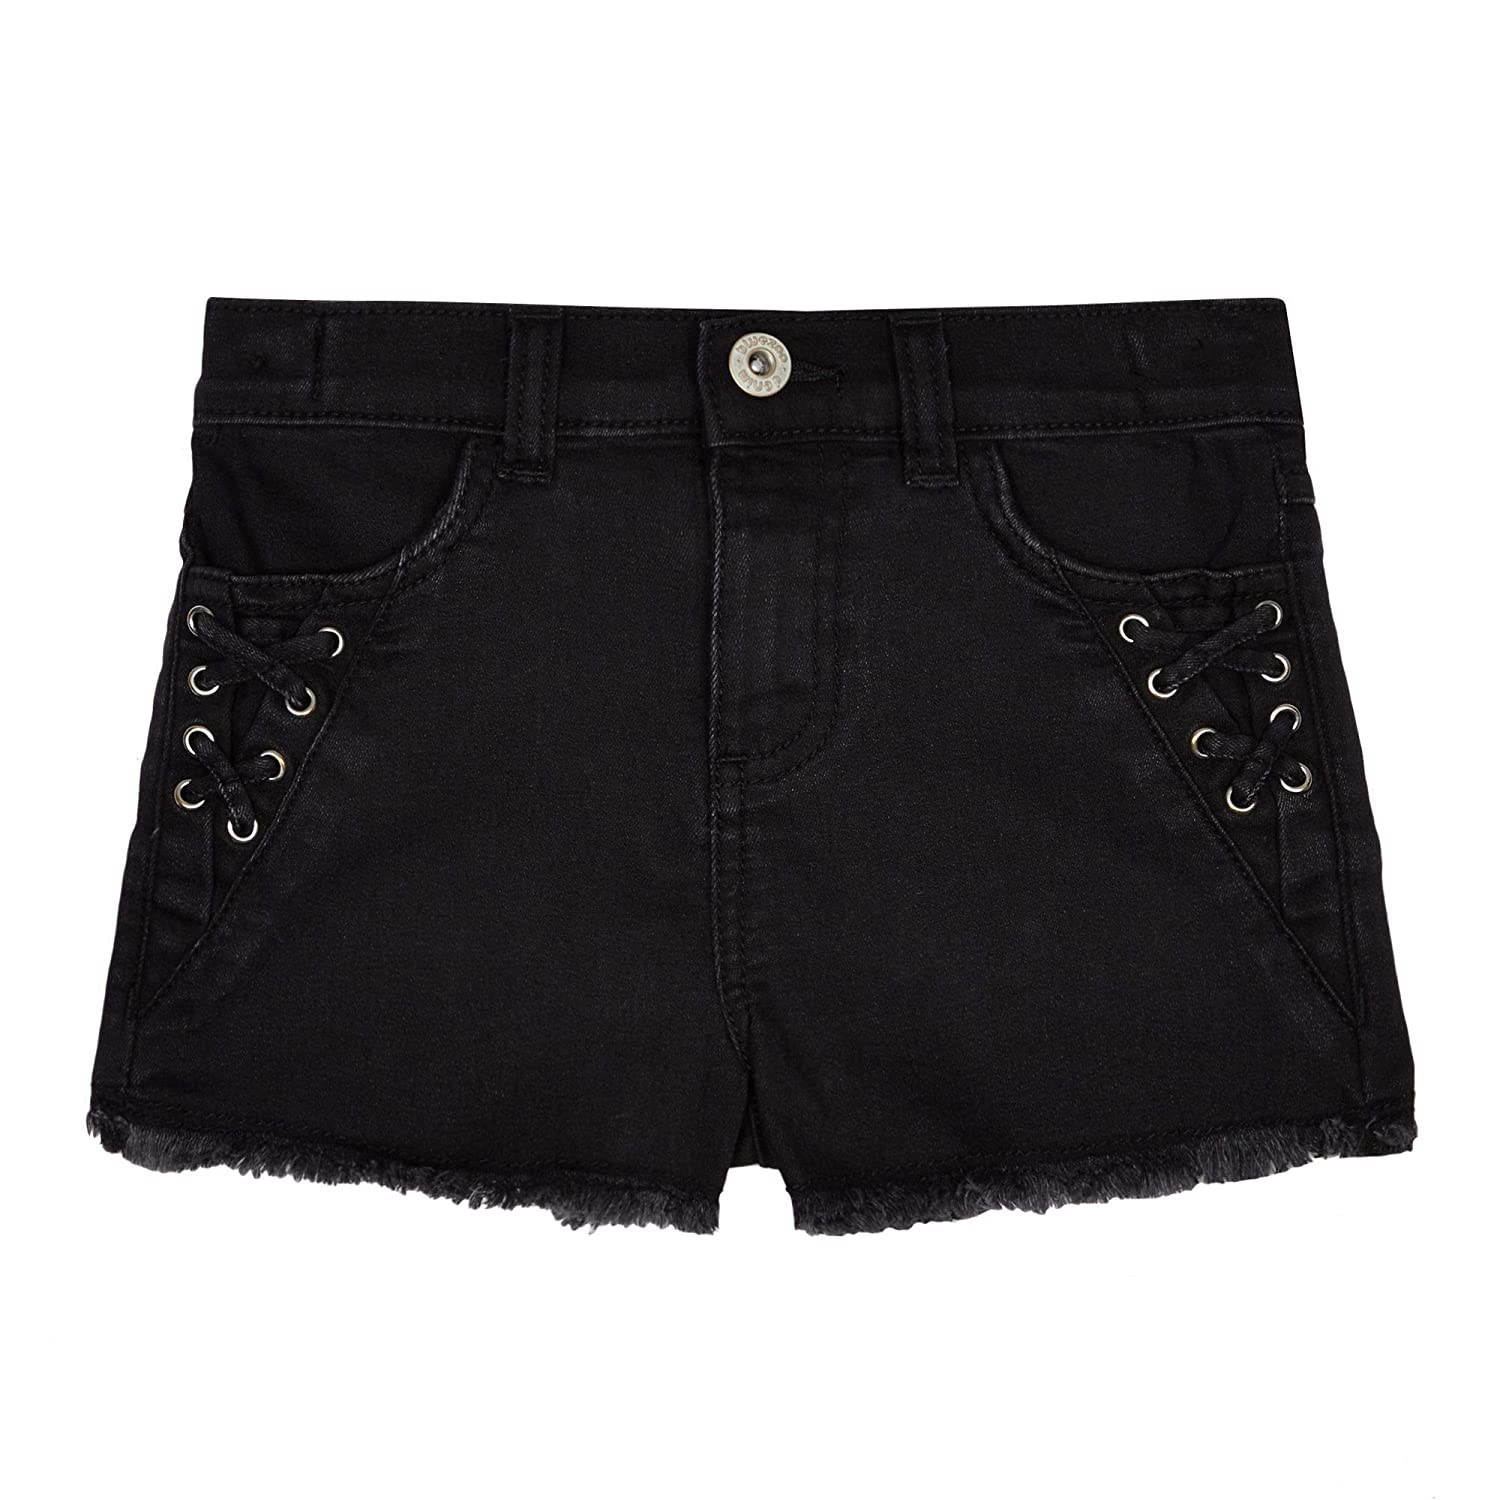 bluezoo Kids Girls' Black Lace Up Detail Denim Shorts